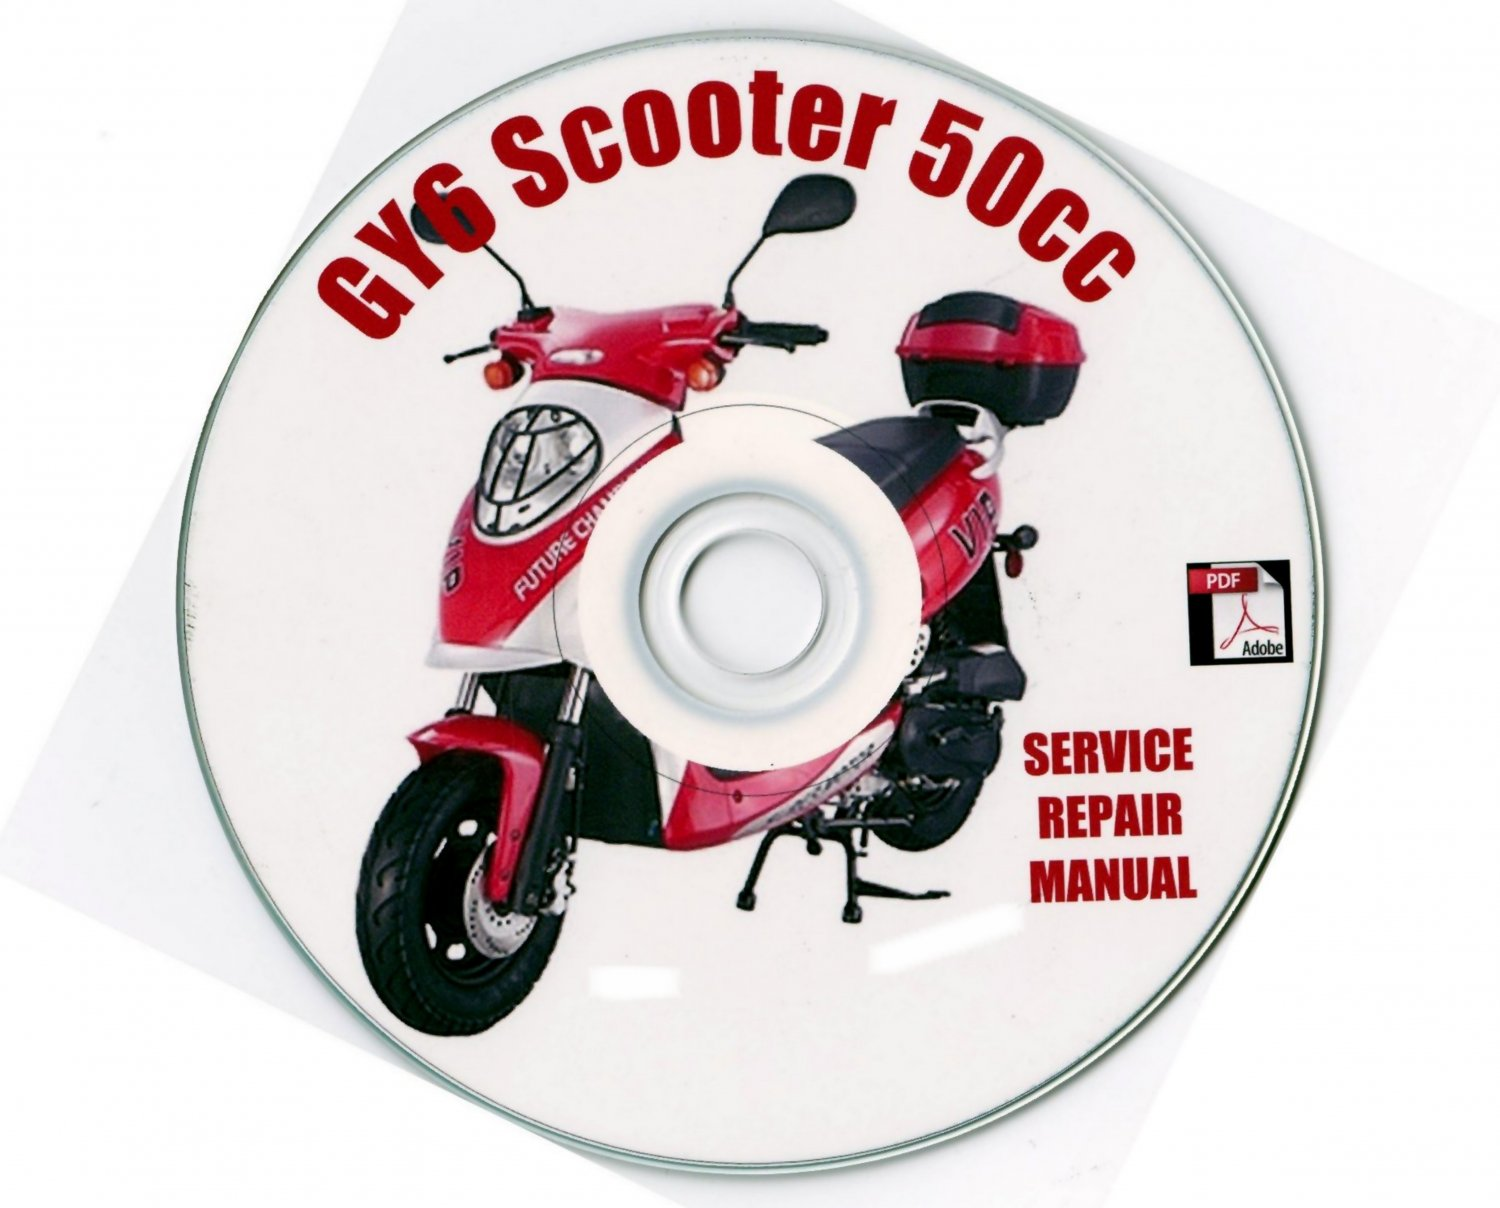 GY6 50cc Scooter Service Repair Manual Rebuild Fix Chinese Qingqi Sanben Sanli Sanya Shineray